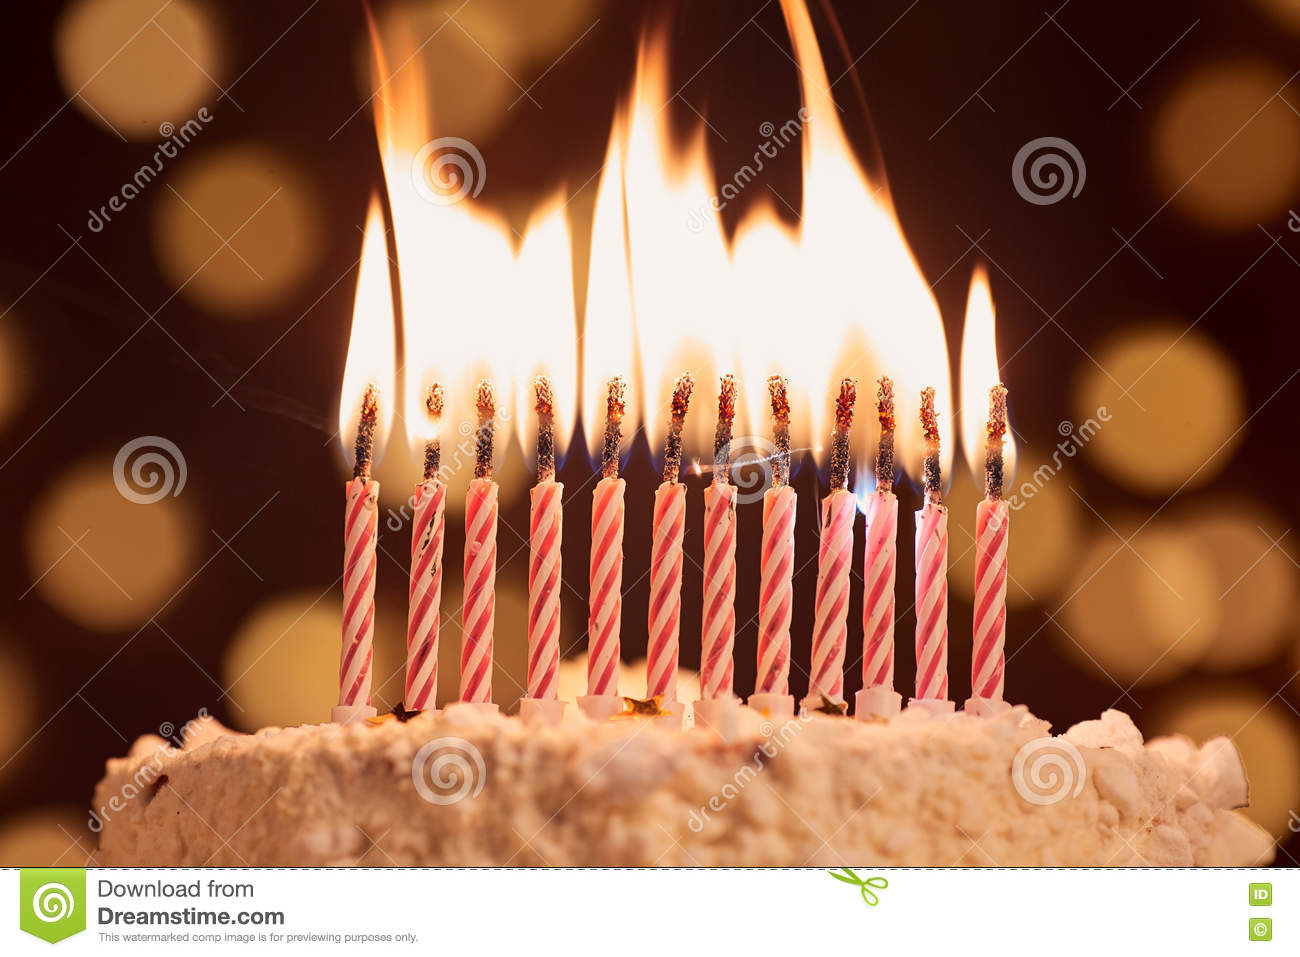 Pleasant Cake Shot On A Bokeh Background With Candles Stock Photo Image Funny Birthday Cards Online Fluifree Goldxyz